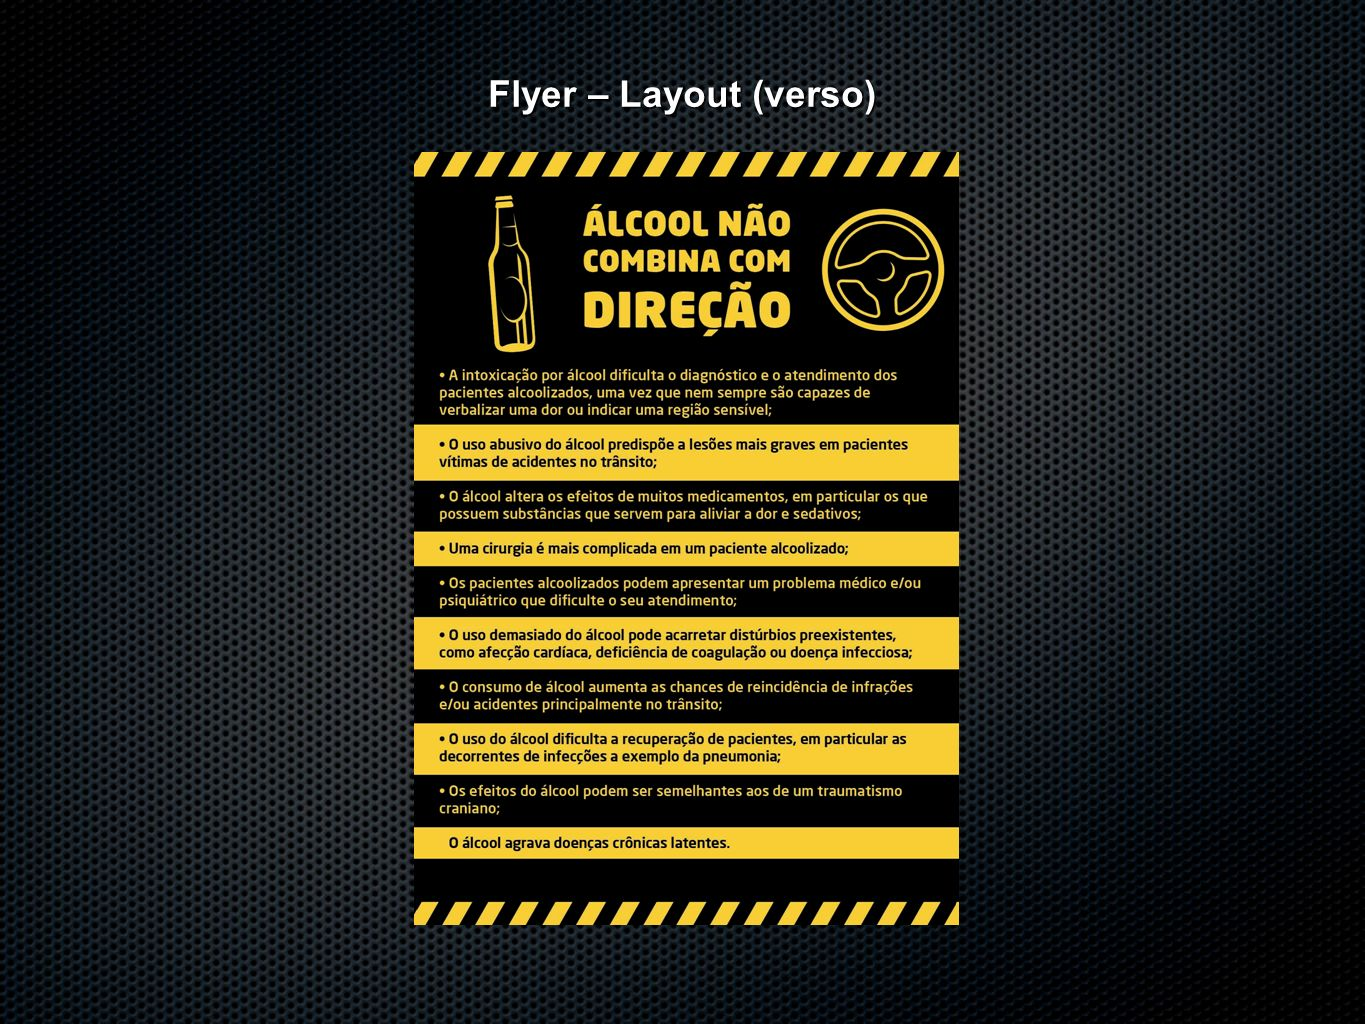 Flyer – Layout (verso)